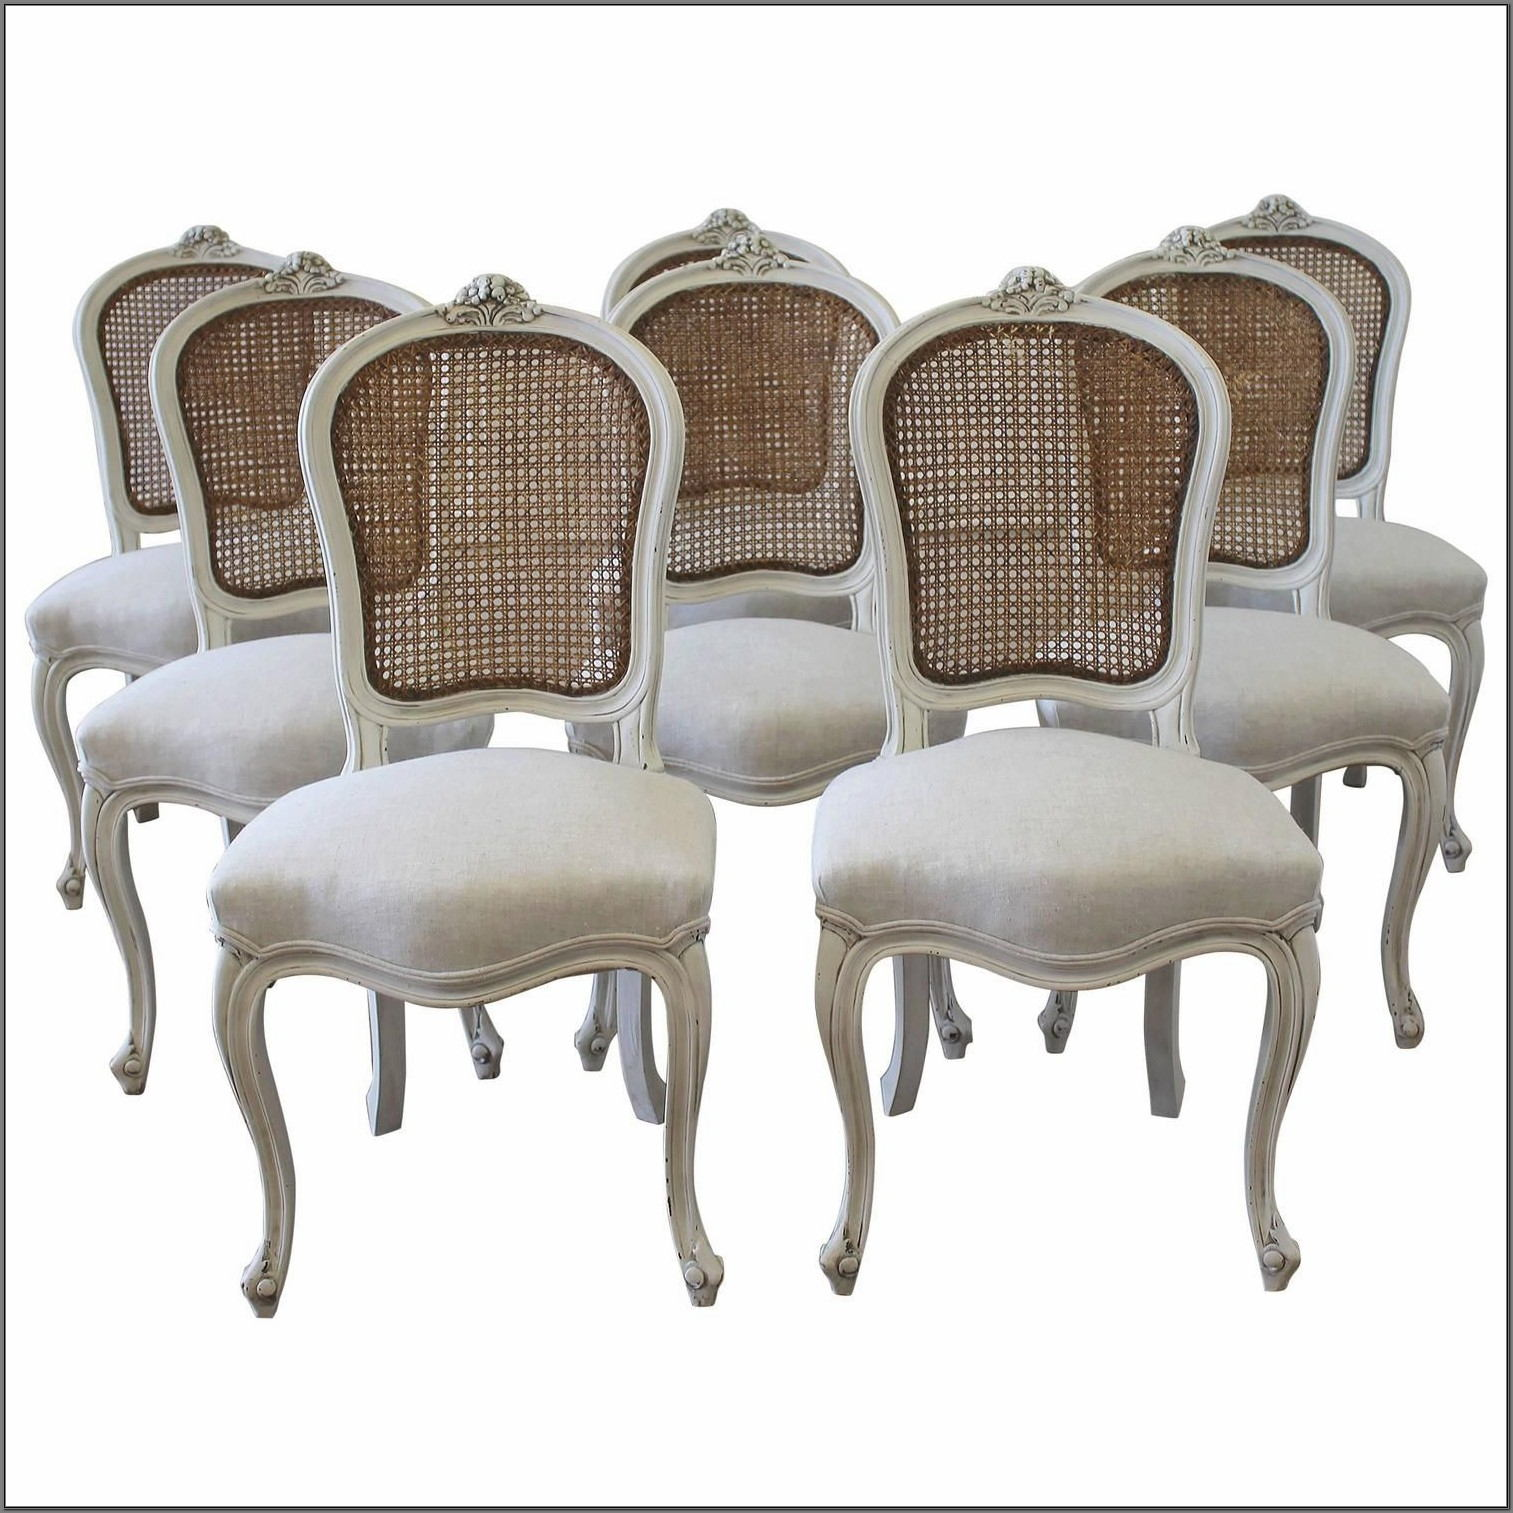 Vintage French Dining Room Chairs